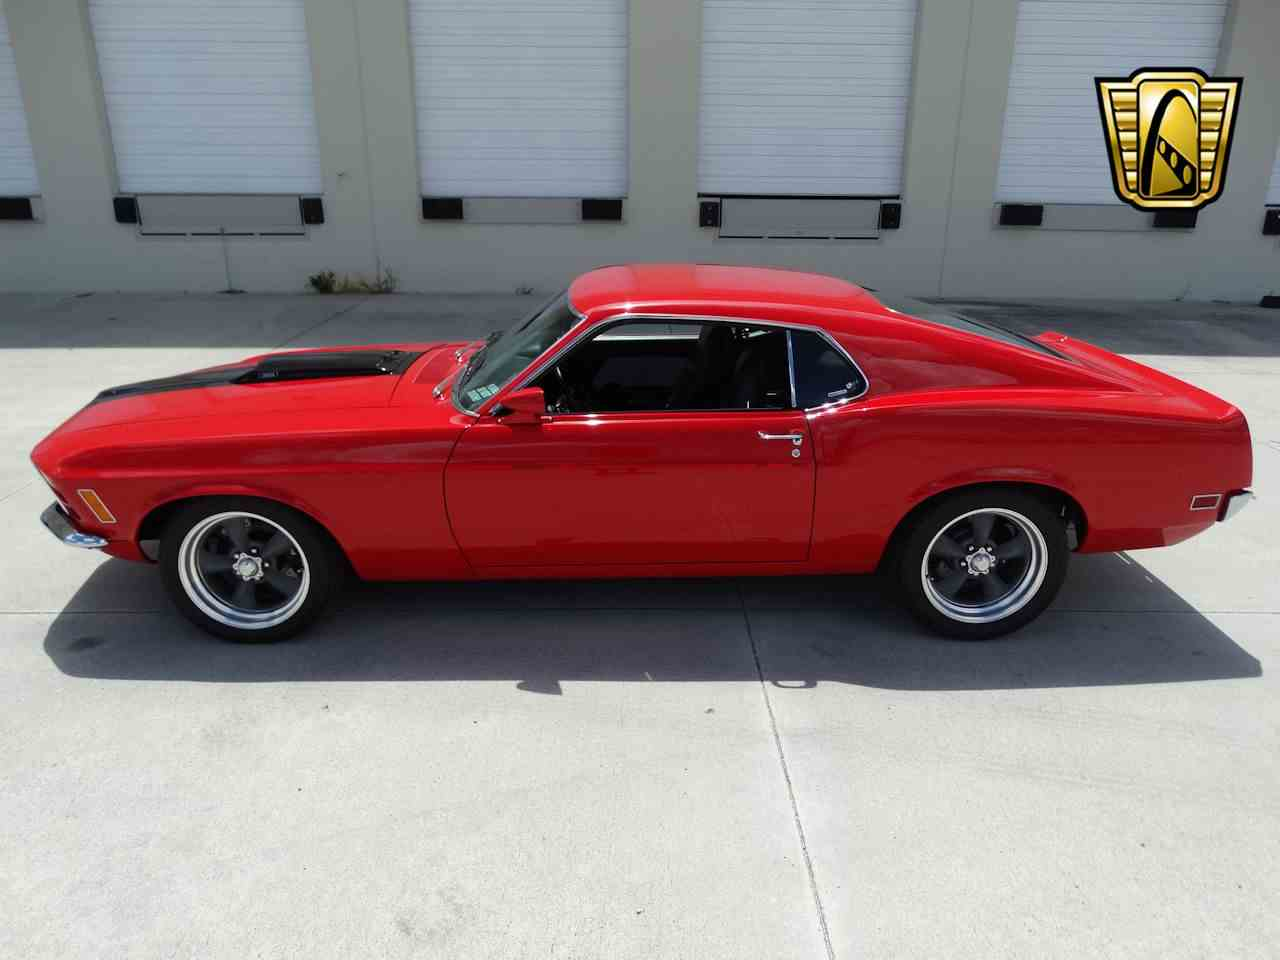 Large Picture of '70 Mustang - $60,000.00 - LG4A